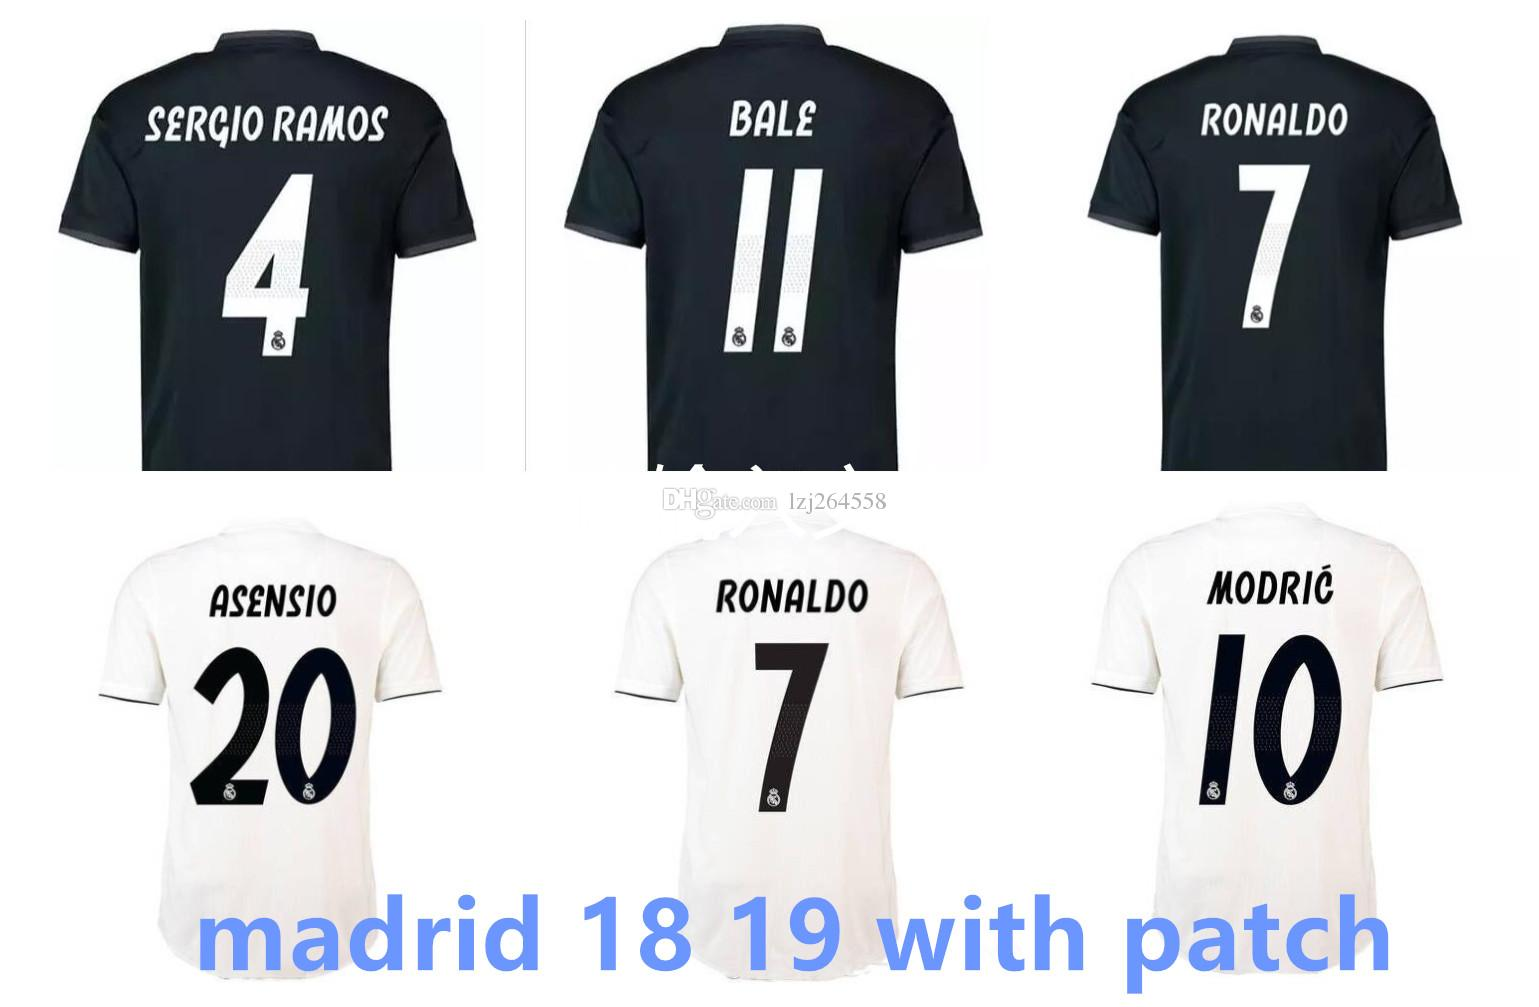 huge selection of 346ae 4325a New Camisa Real Madrid 2019 Soccer Jerseys, Chandal Cristiano Ronaldo  Jersey Football Shirt 18 19 CR7 ASENSIO Modric Kroos Ramos Bale FUTBAL